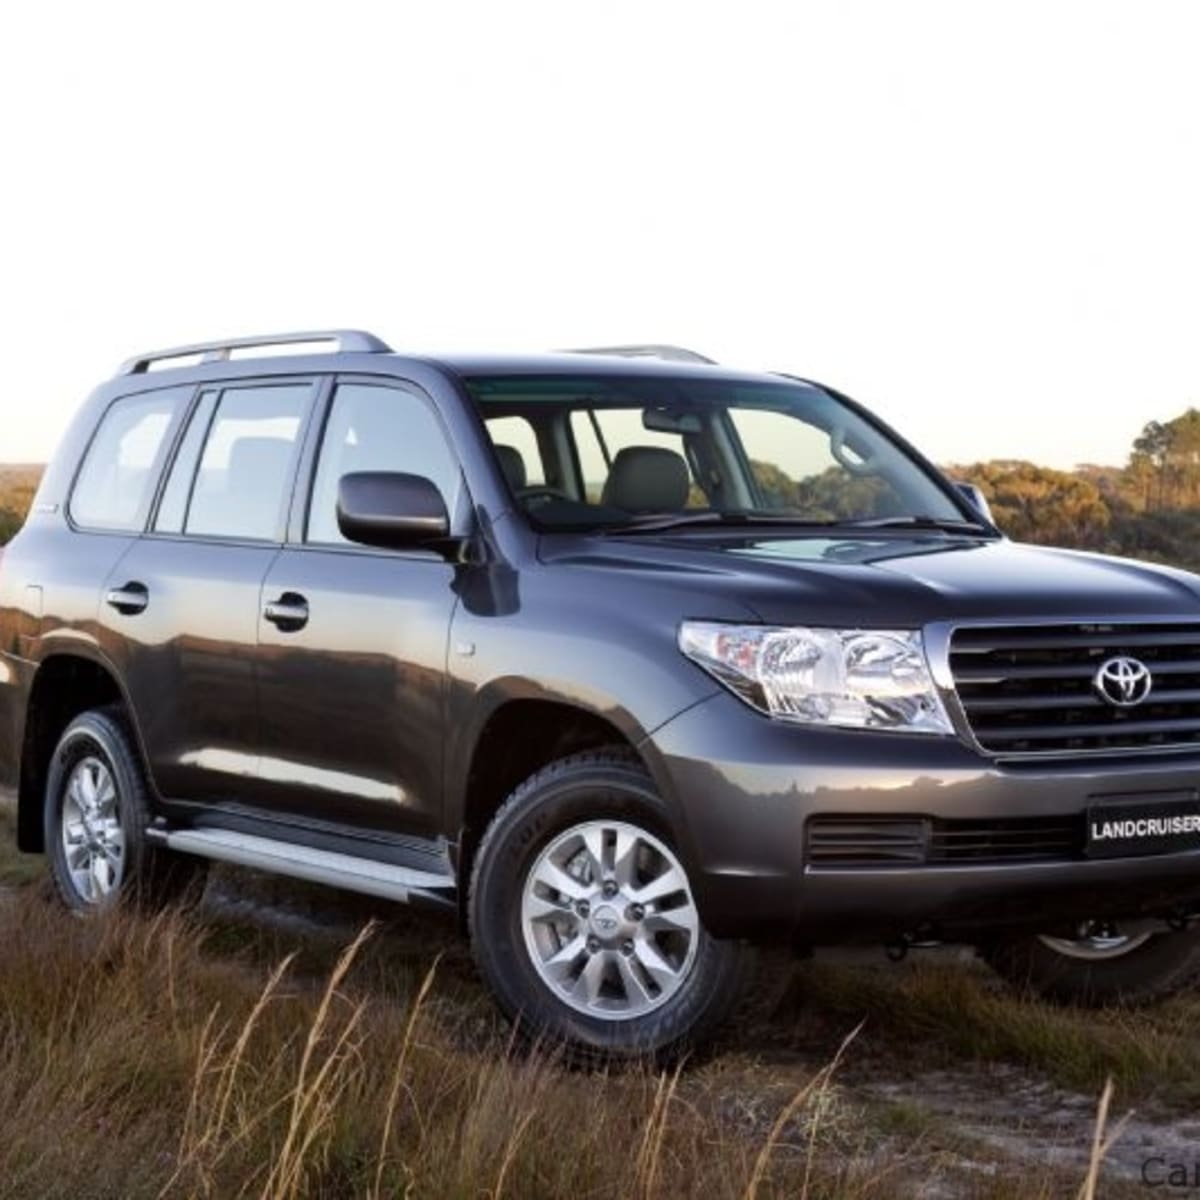 Toyota LandCruiser 200 Series 60th Anniversary Edition | CarAdvice